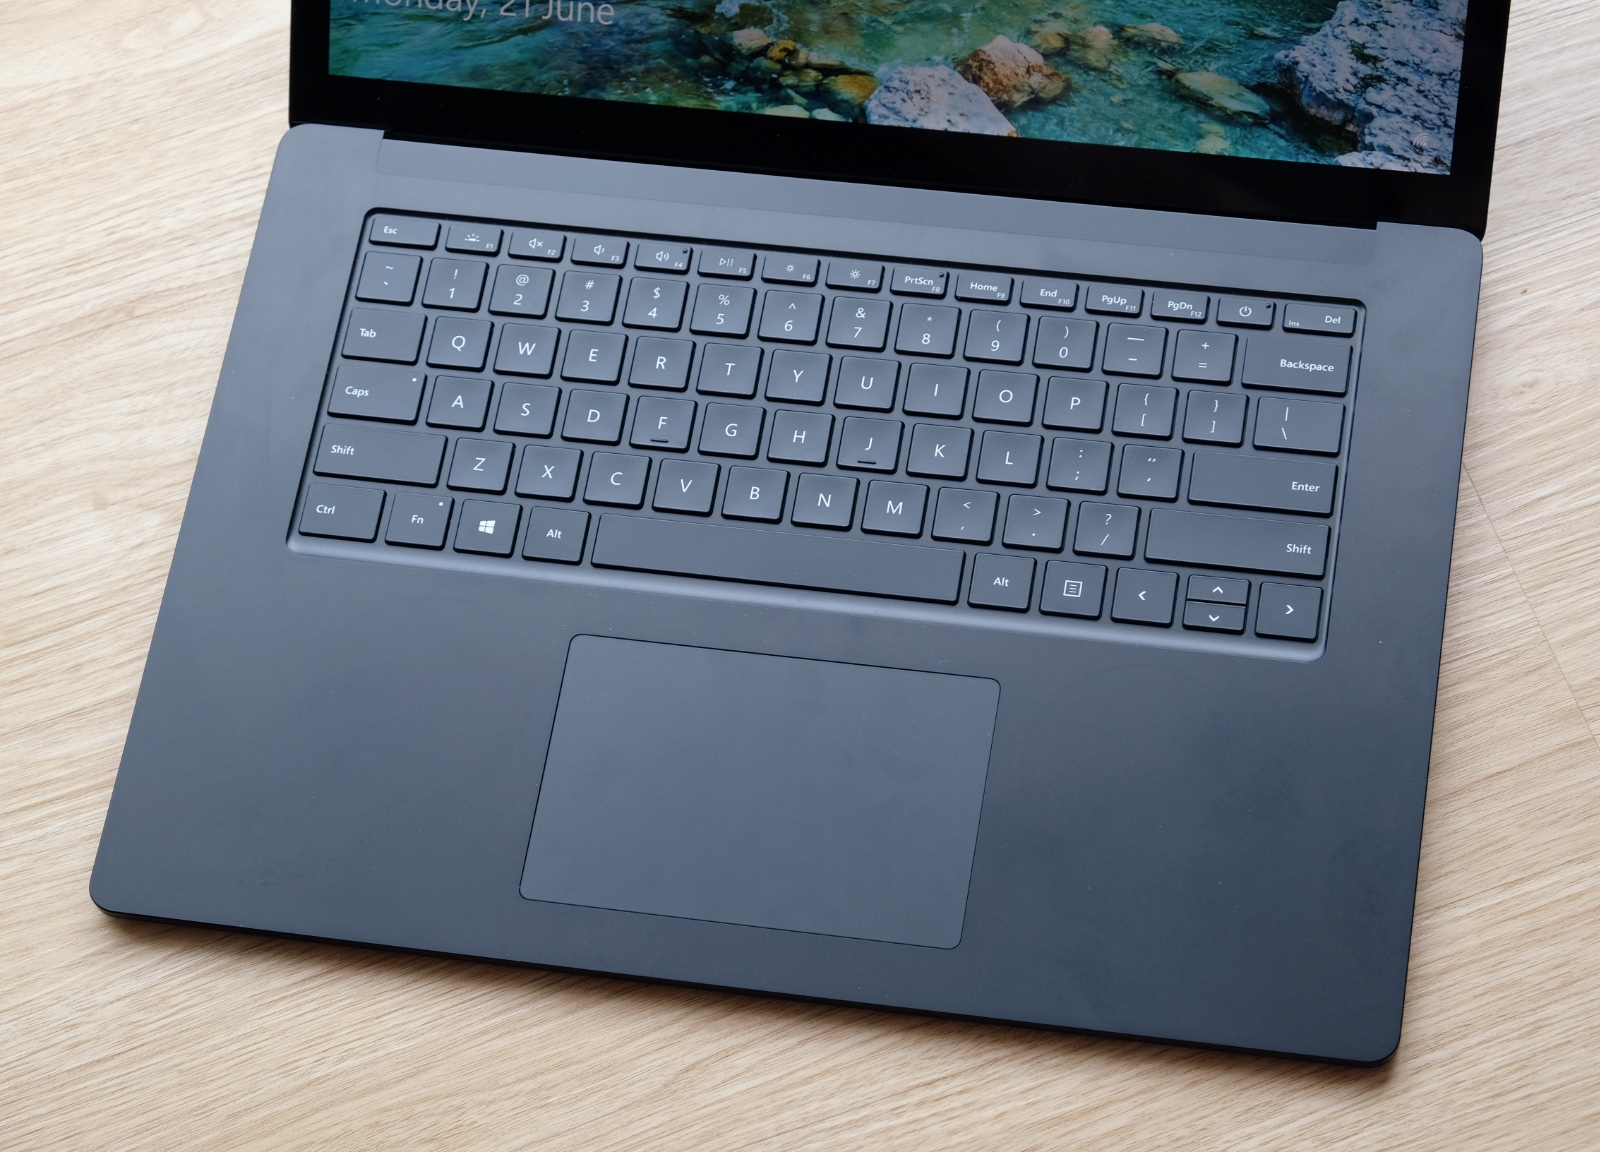 The trackpad is super accurate and responsive. The keyboard is also mostly pleasant to type on.